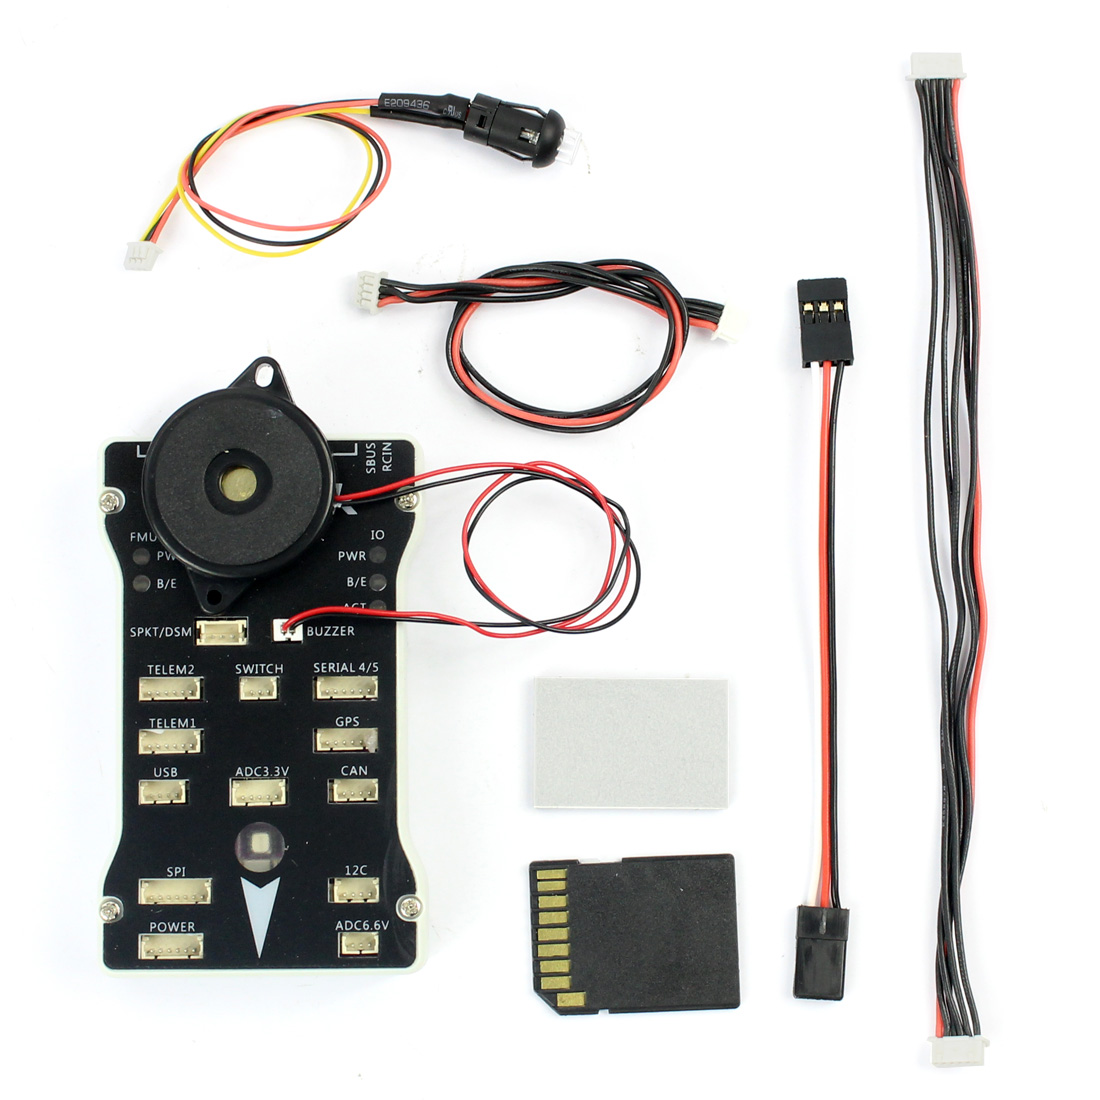 F07807-I 2 4G 9CH DIY RC PX4 GPS 5 8G FPV 680PRO Hexacopter Unassembled  6-Axle Kit ARF RC Drone MINI3D Pro Gimbal No Battery